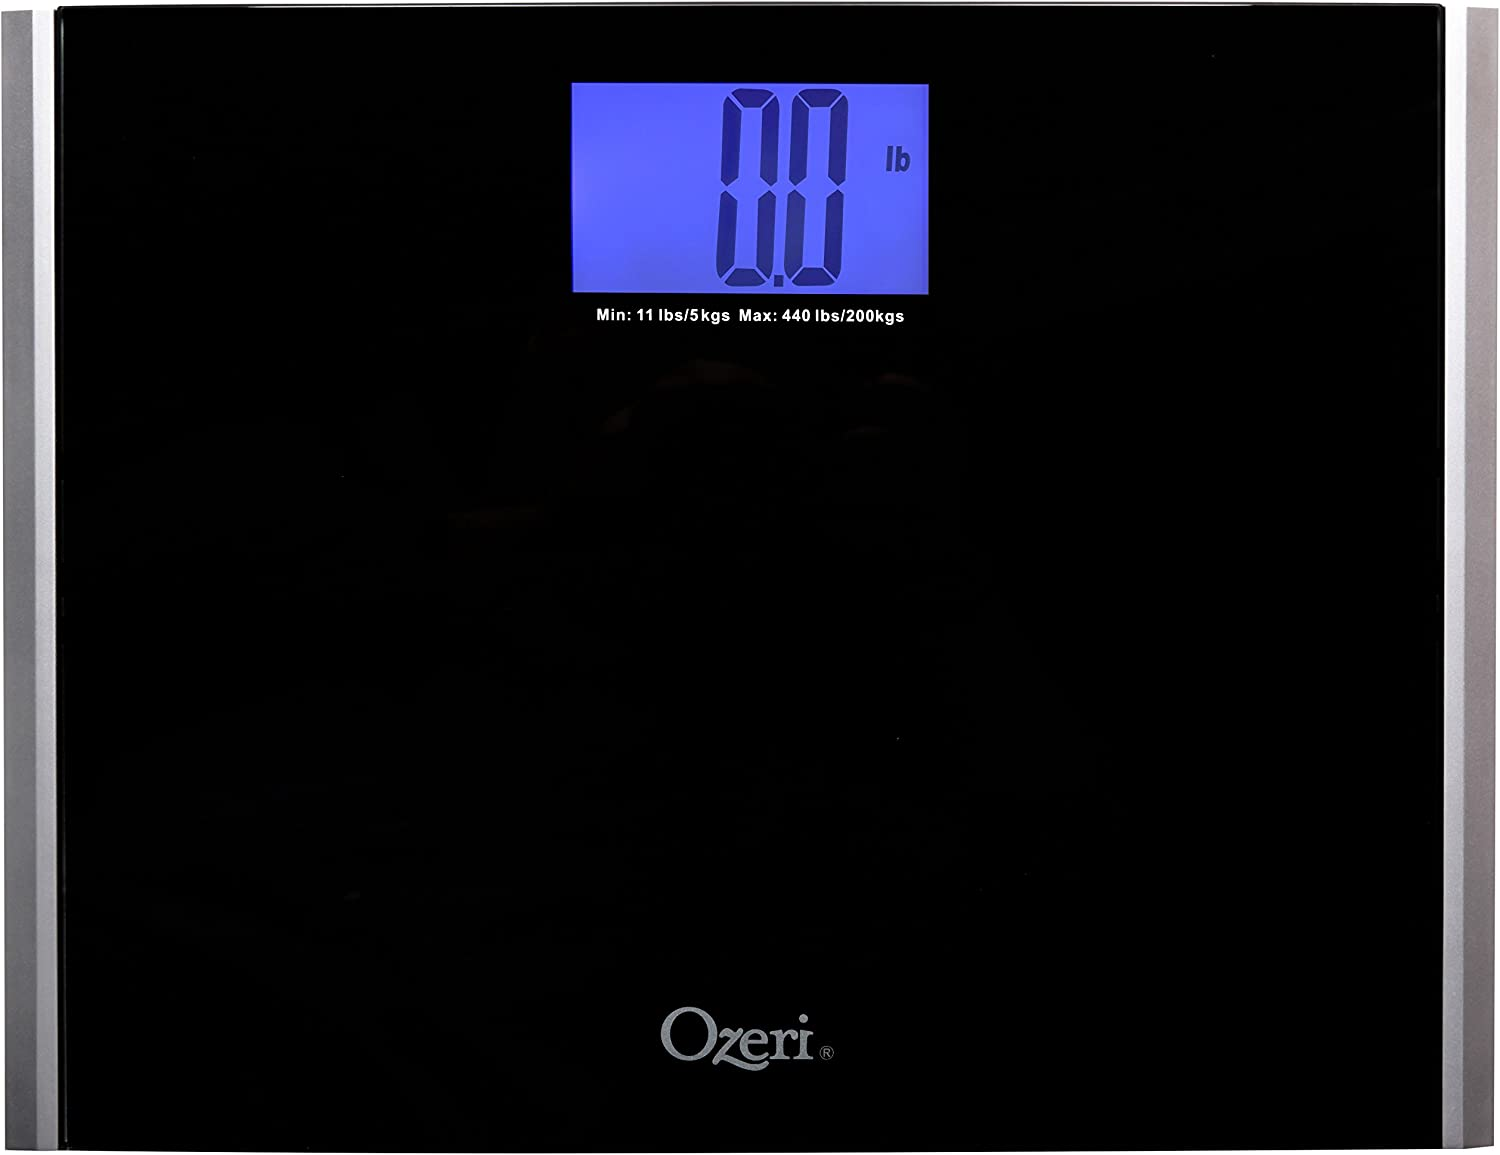 Ozeri Precision Pro II Digital Bath Scale 440 lbs Capacity with Weight Change Detection Technology